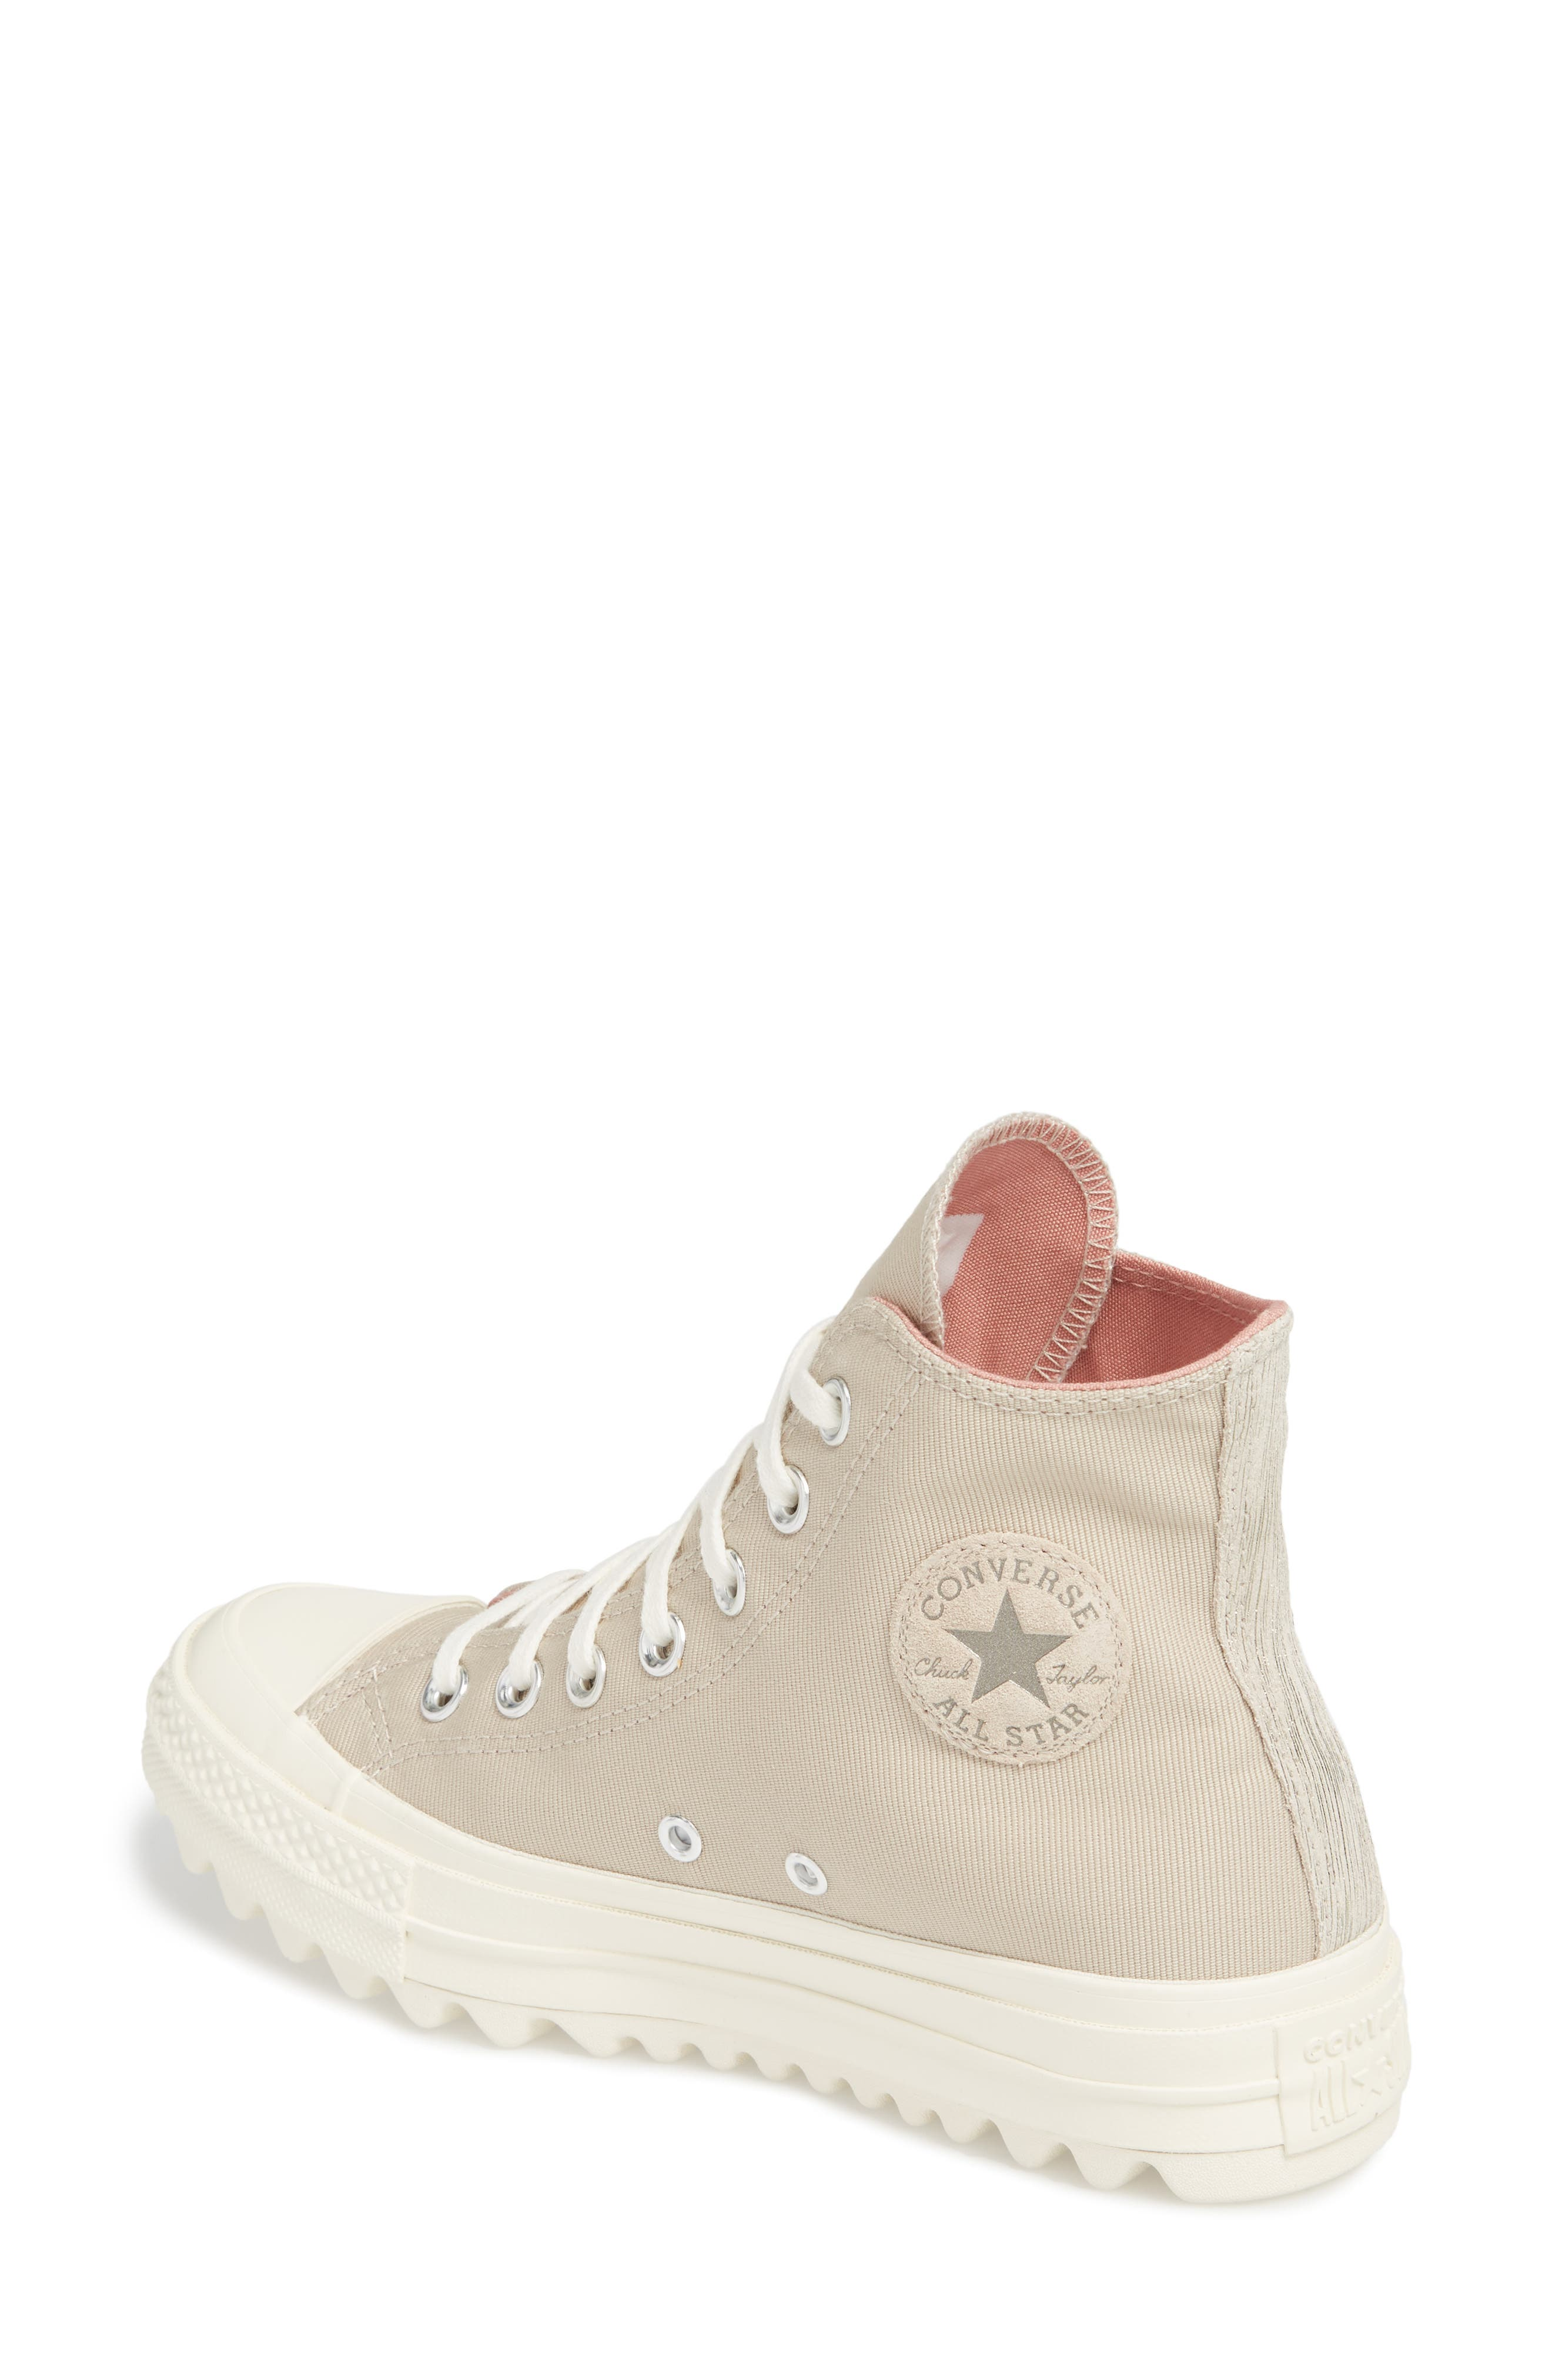 Chuck Taylor<sup>®</sup> All Star<sup>®</sup> Ripple High Top Sneaker,                             Alternate thumbnail 2, color,                             Papyrus Suede